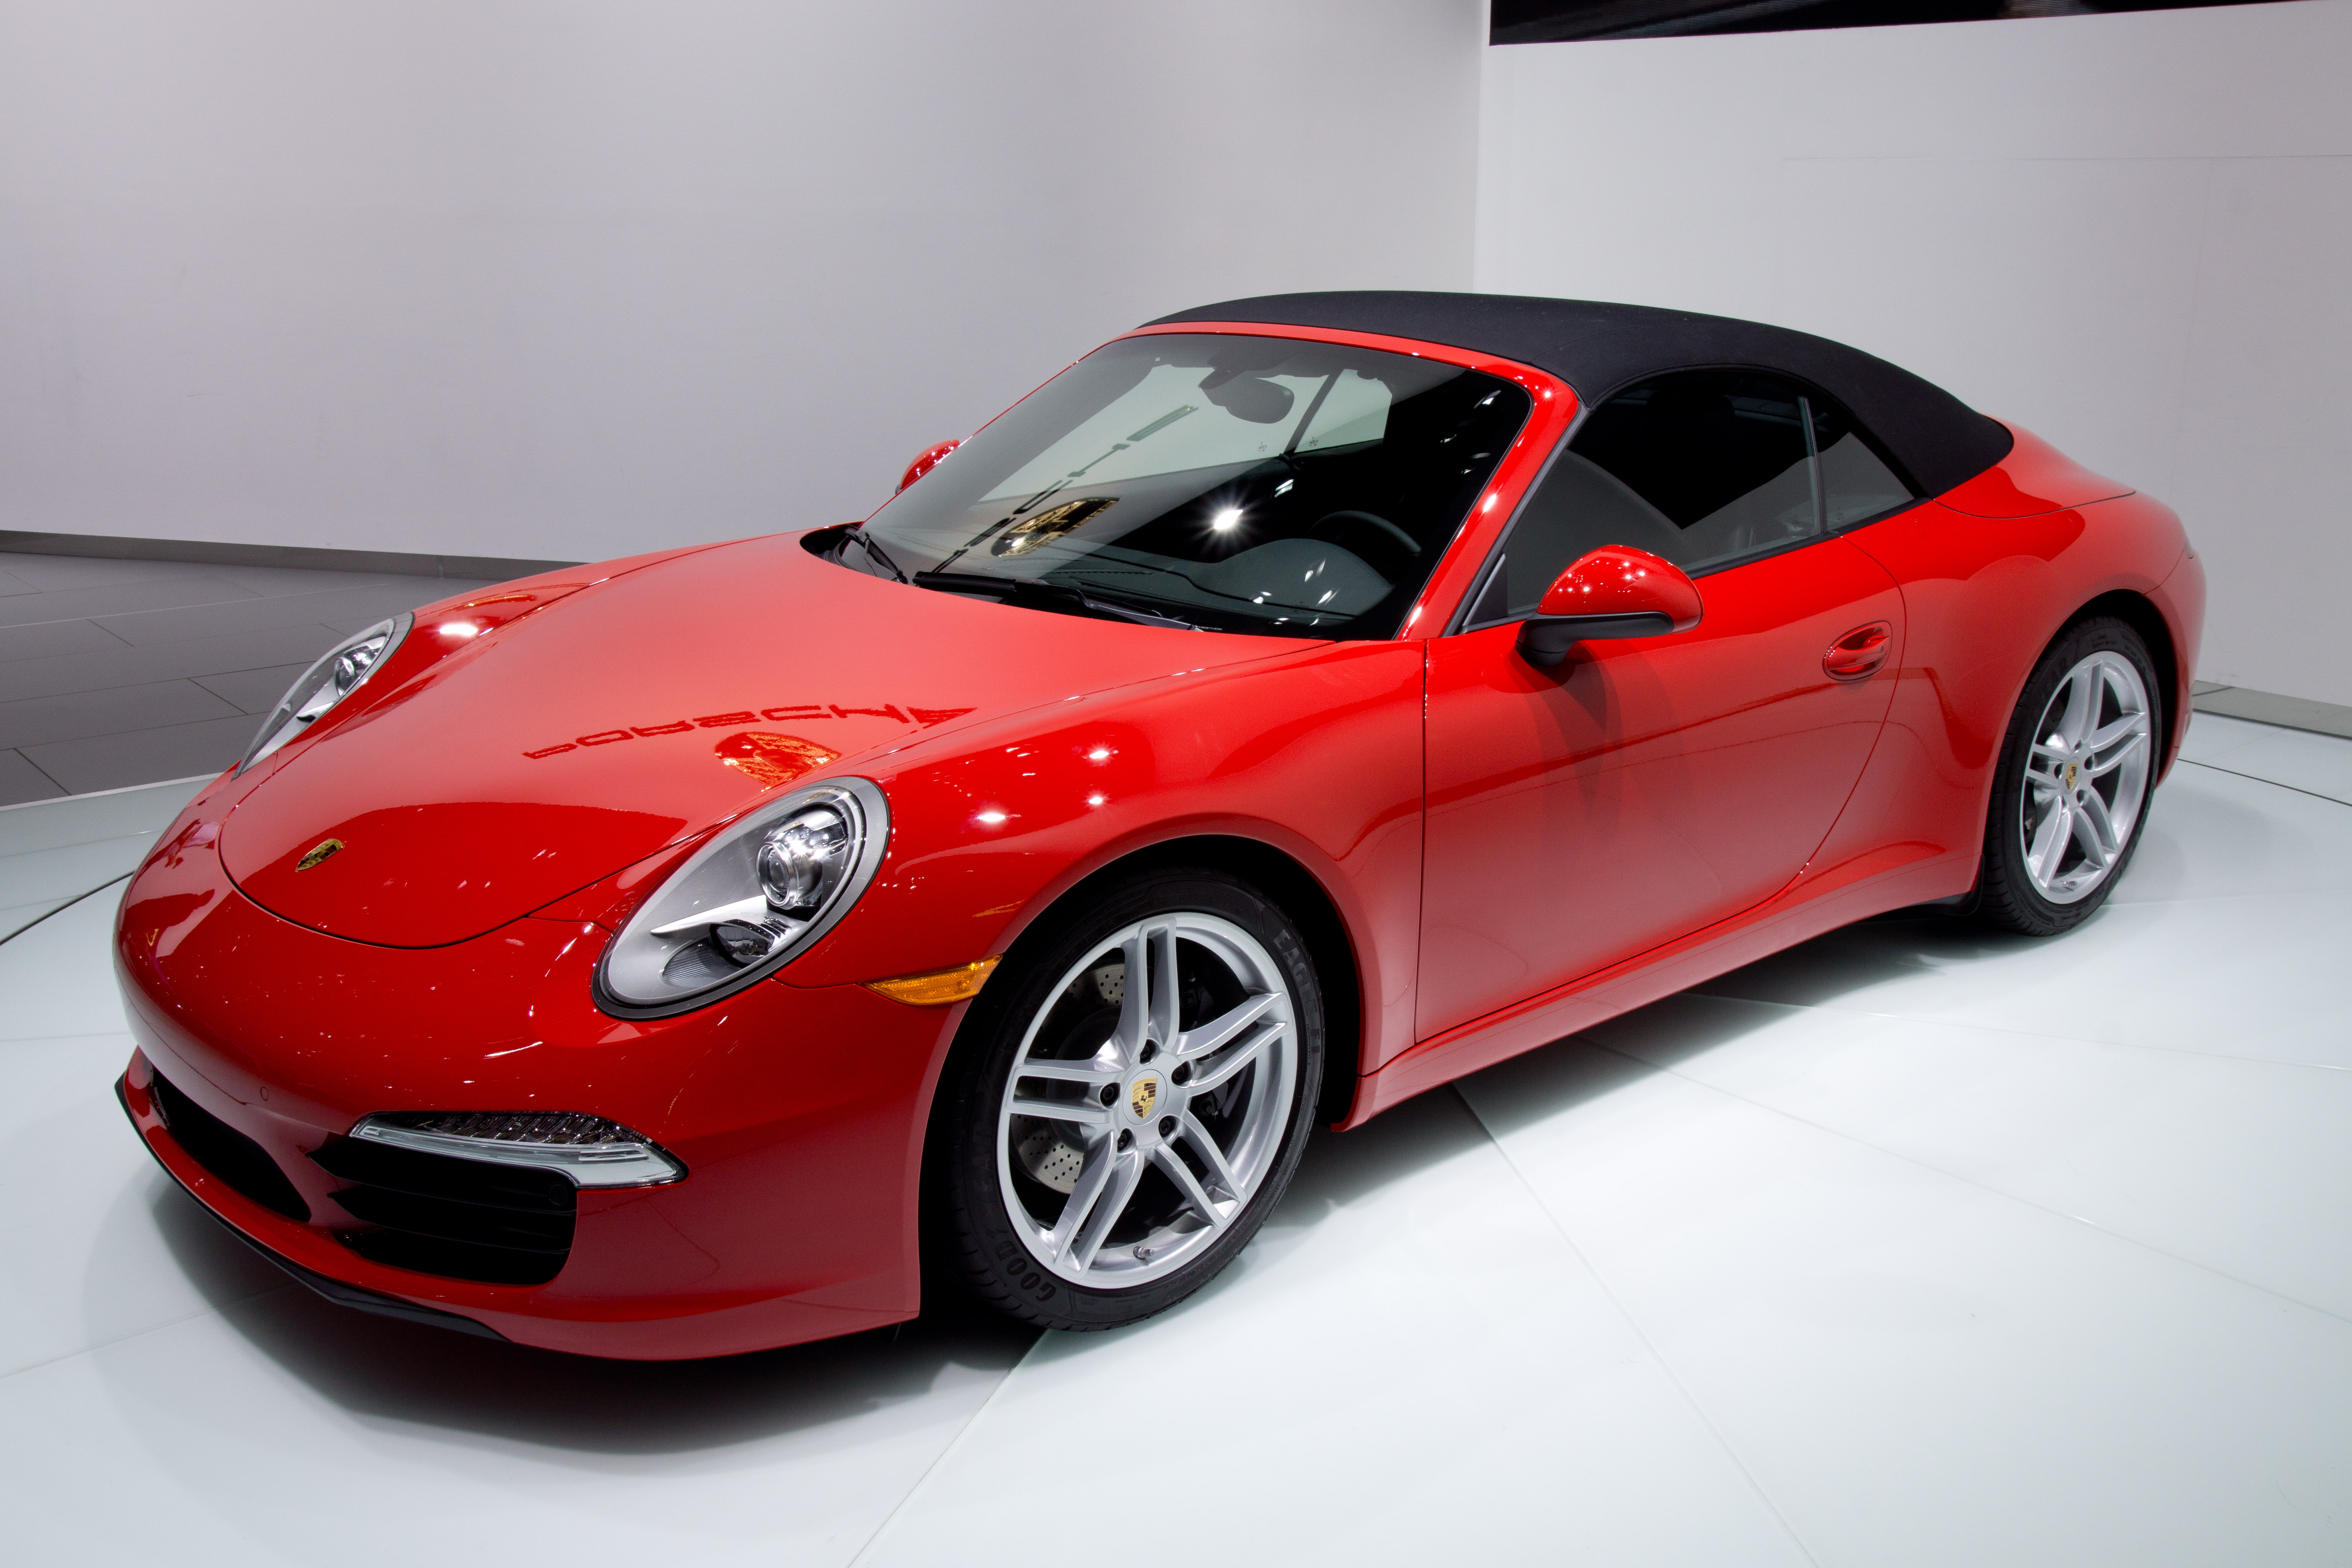 File:2012 NAIAS Red Porsche 991 convertible (world premiere).jpg